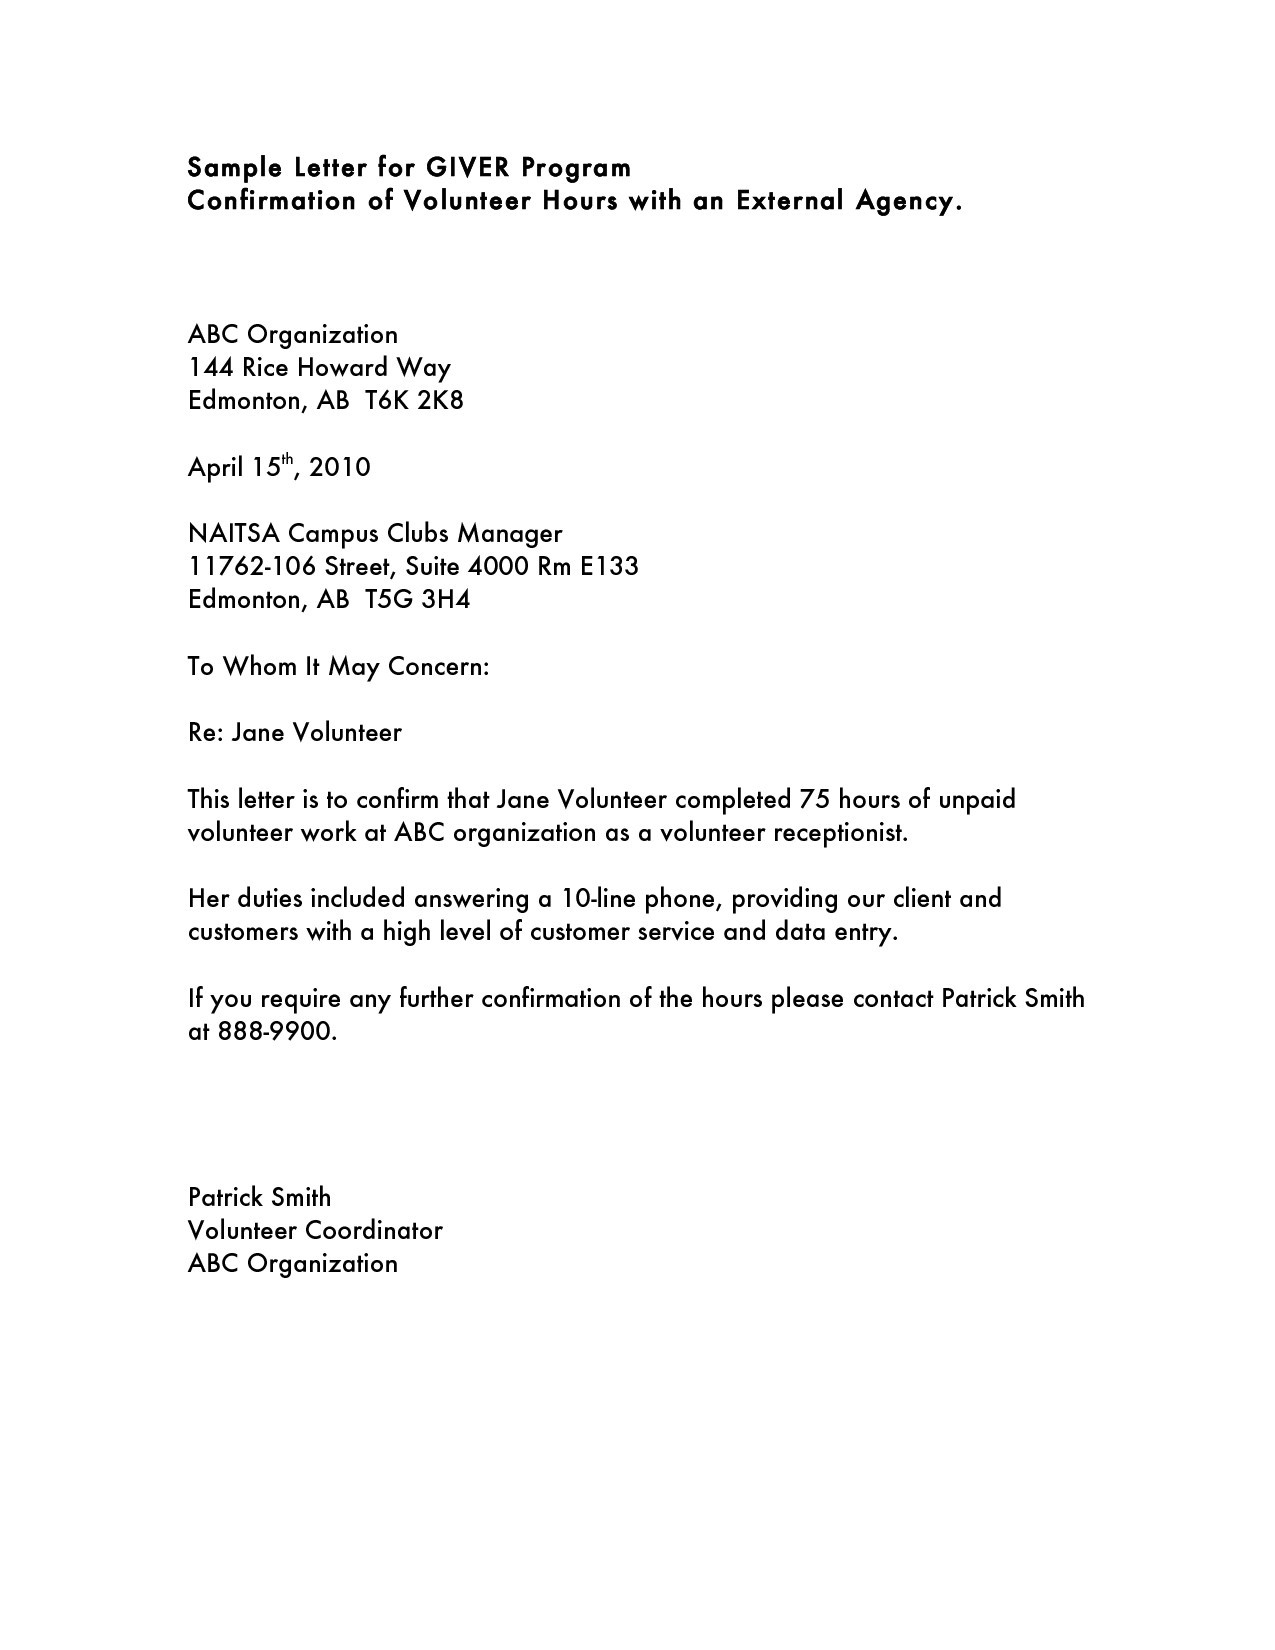 Proof of residency letter template examples letter templates proof of residency letter template lindatellingtonjones resume formats and template frees expocarfo Image collections